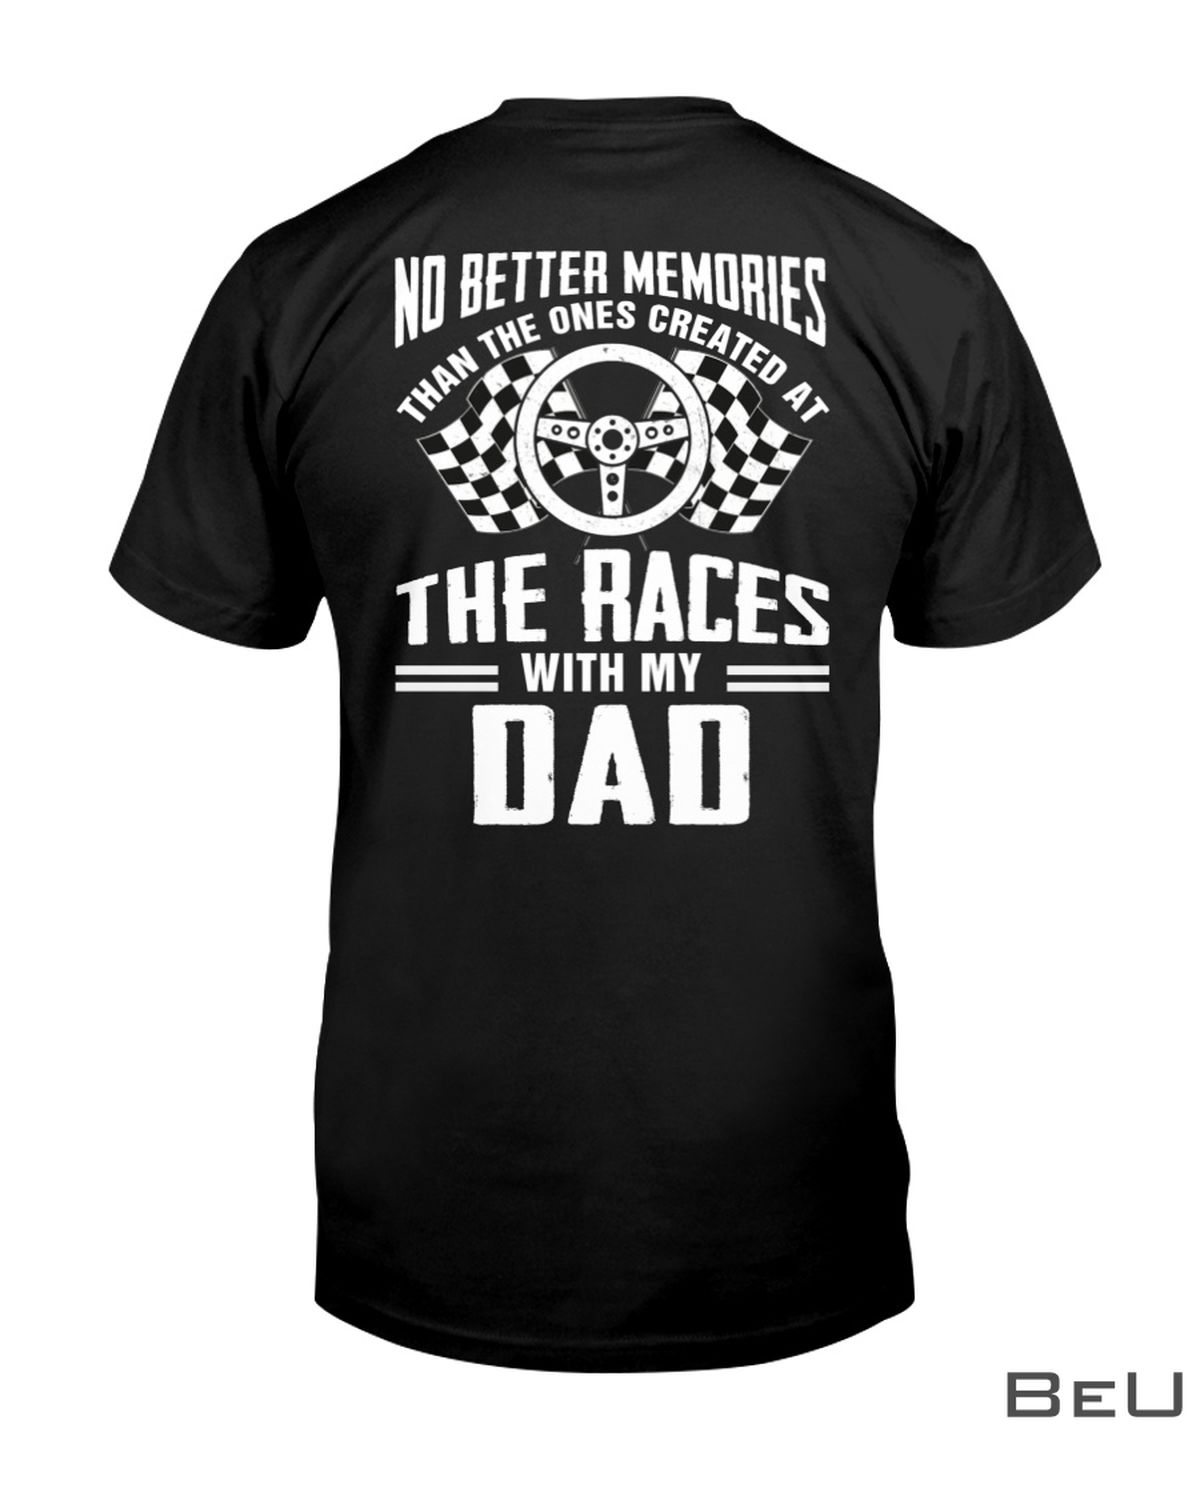 Stock Car Racing No Better Memories Than The Ones Created At The Races With My Dad Shirt, hoodie, tank top